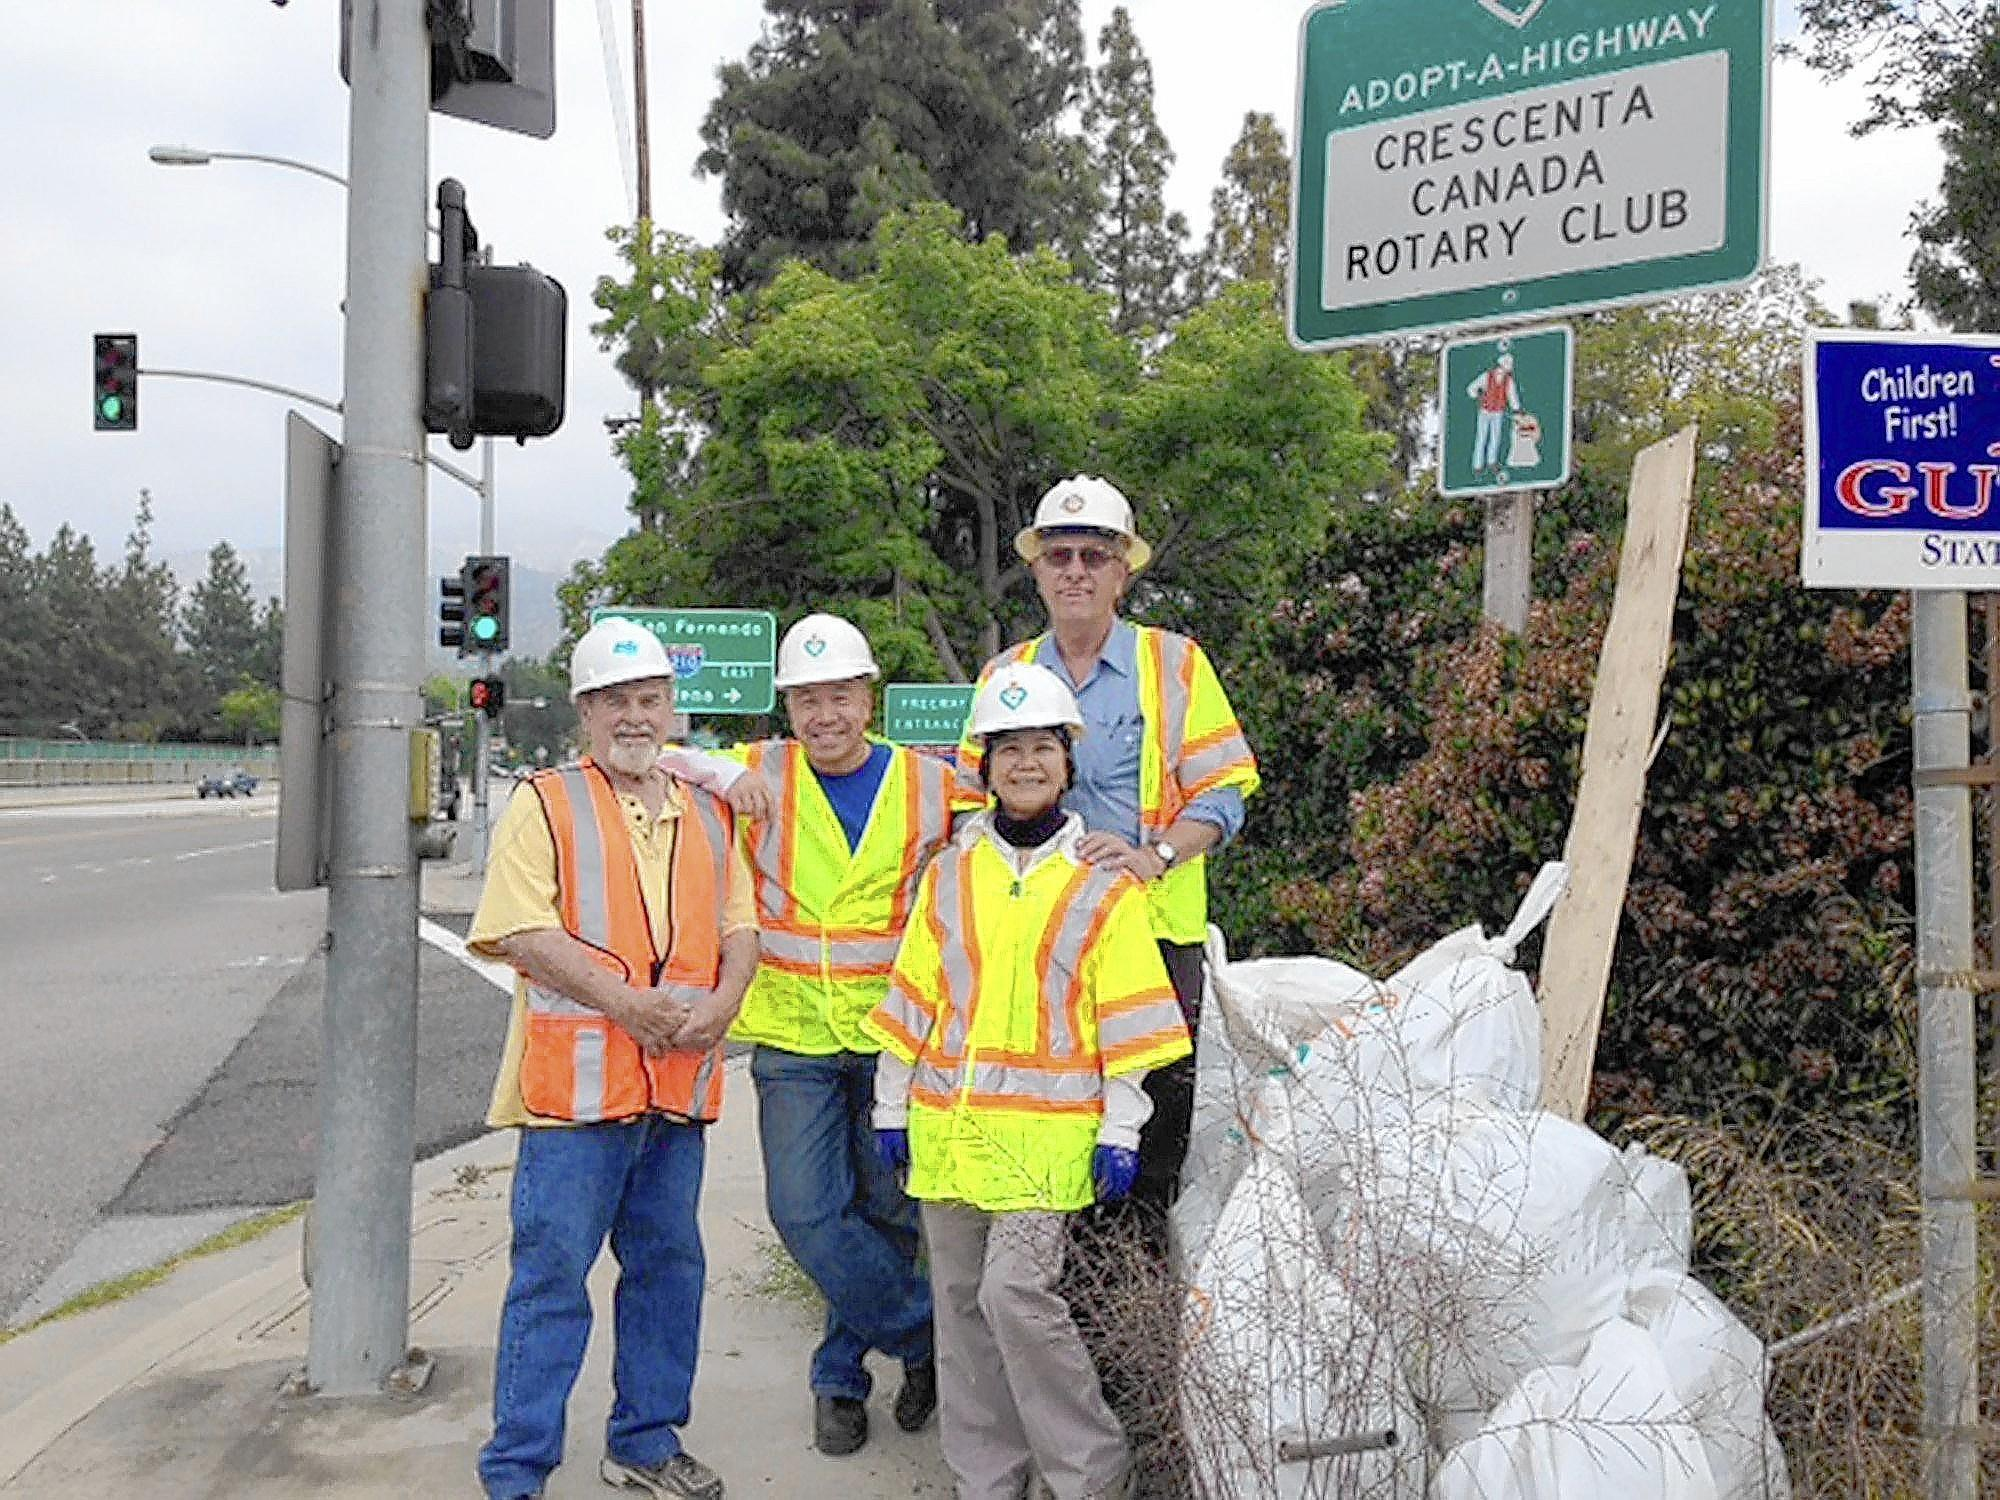 Members of the Crescenta Cañada Rotary Club, from left, Fred Konrad, Dennis Yen, President Robert Ippolito and President Elect Lynn Chen participated in Rotary at Work day on Saturday, April 12, 2104. Volunteers worked to clean up a stretch of Angeles Crest Highway in La Cañada Flintridge.